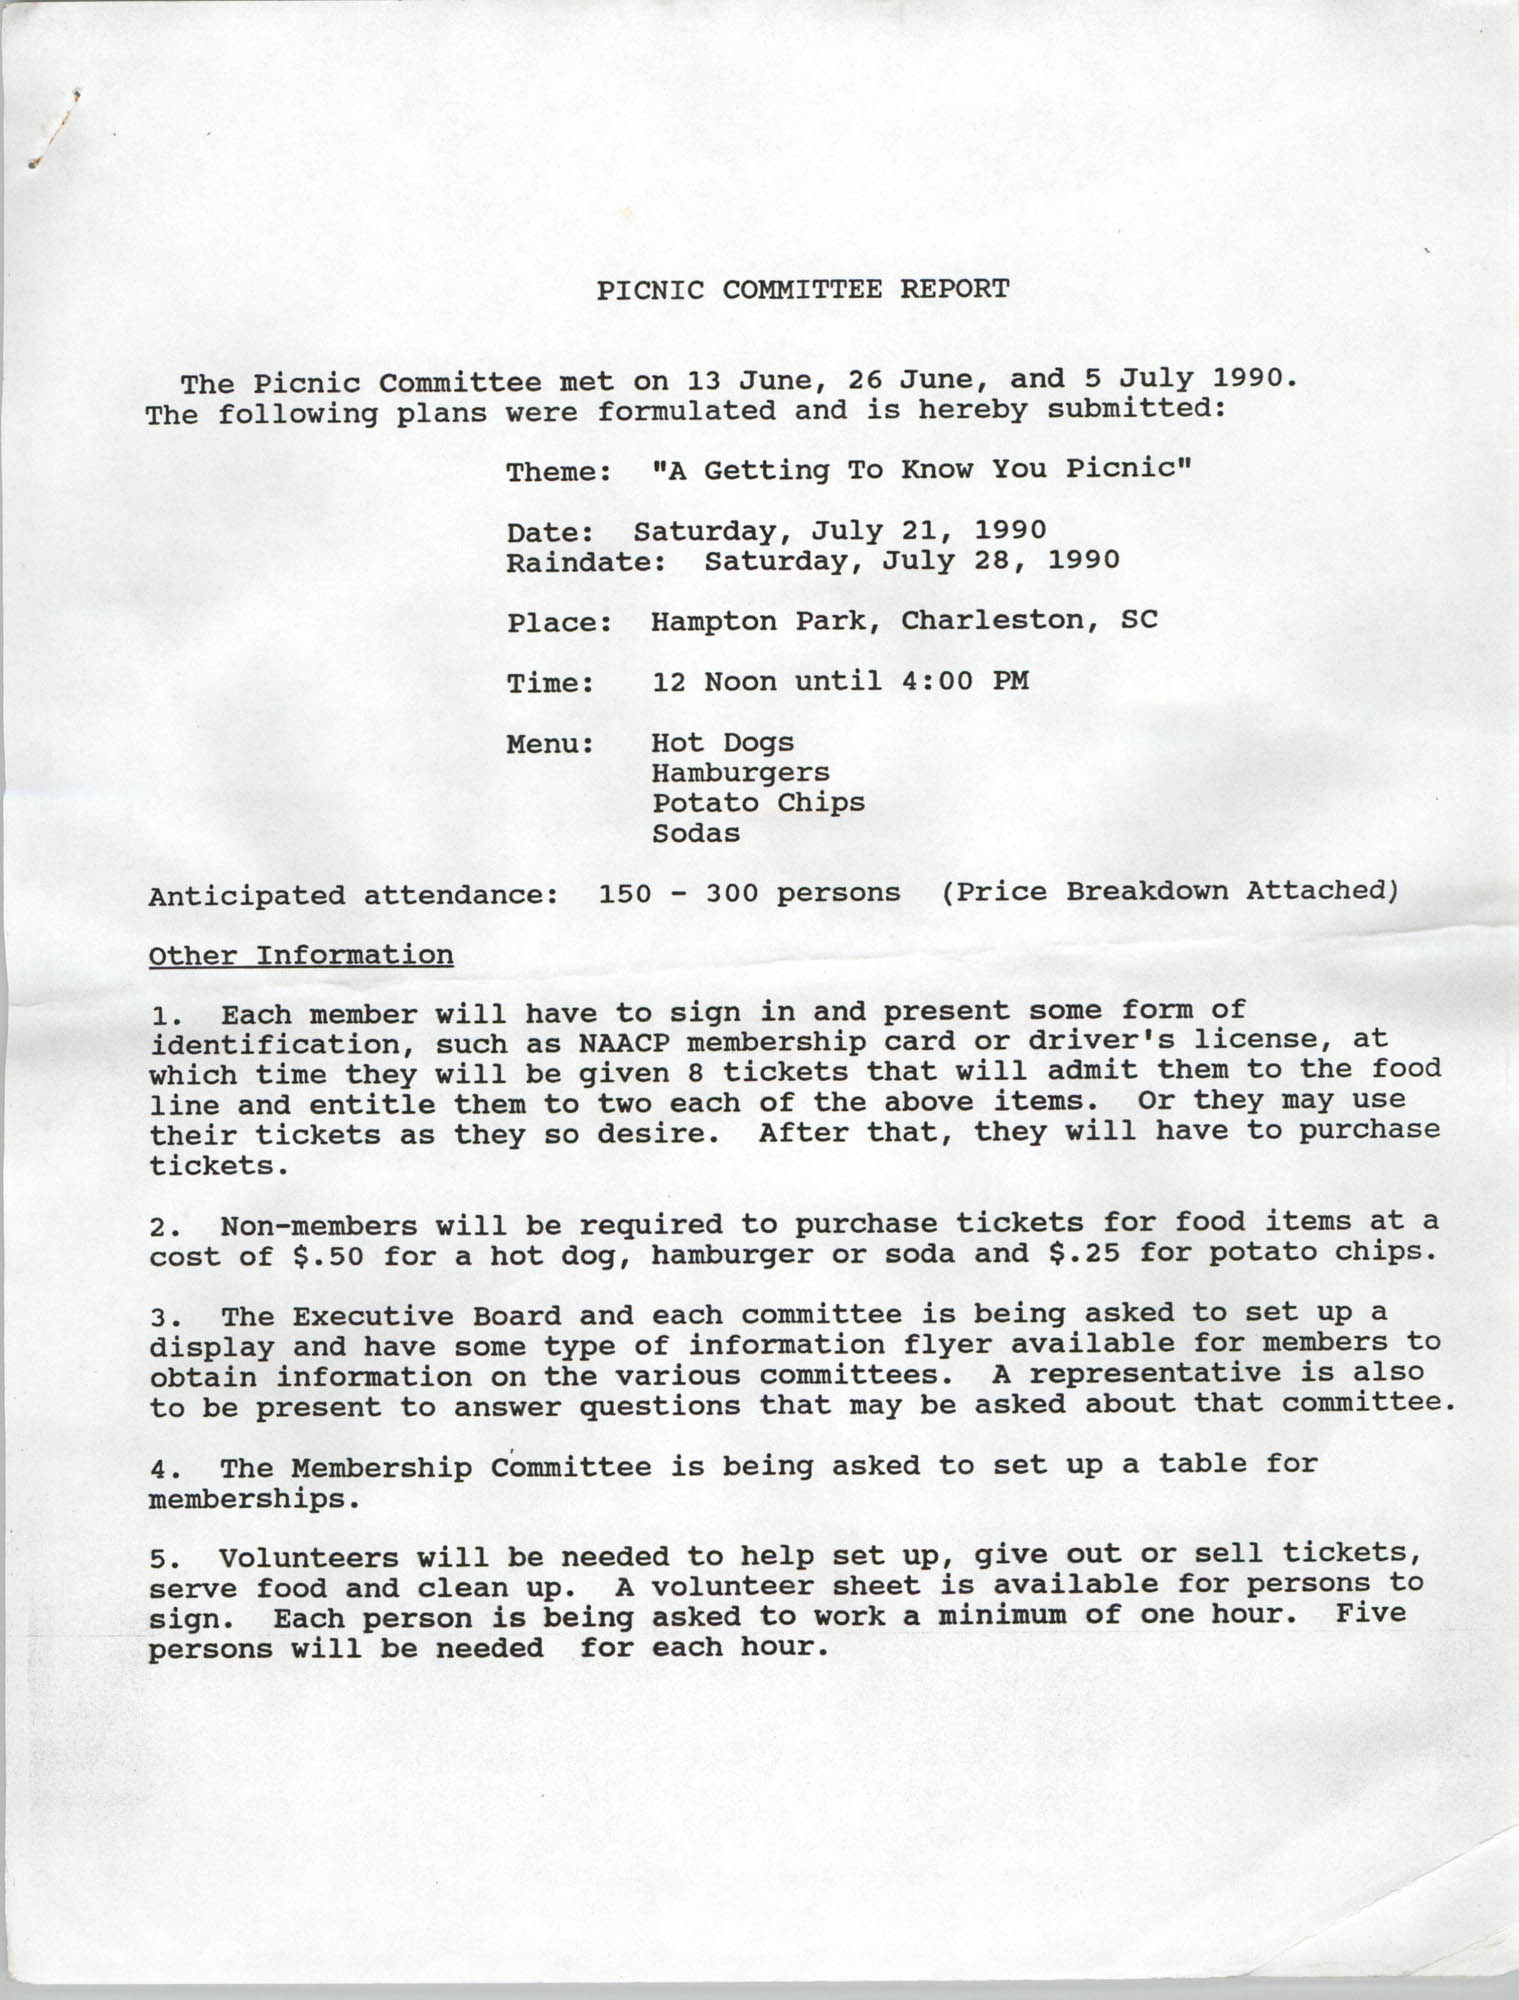 Picnic Committee Report, Charleston Chapter of the NAACP, June and July 1990